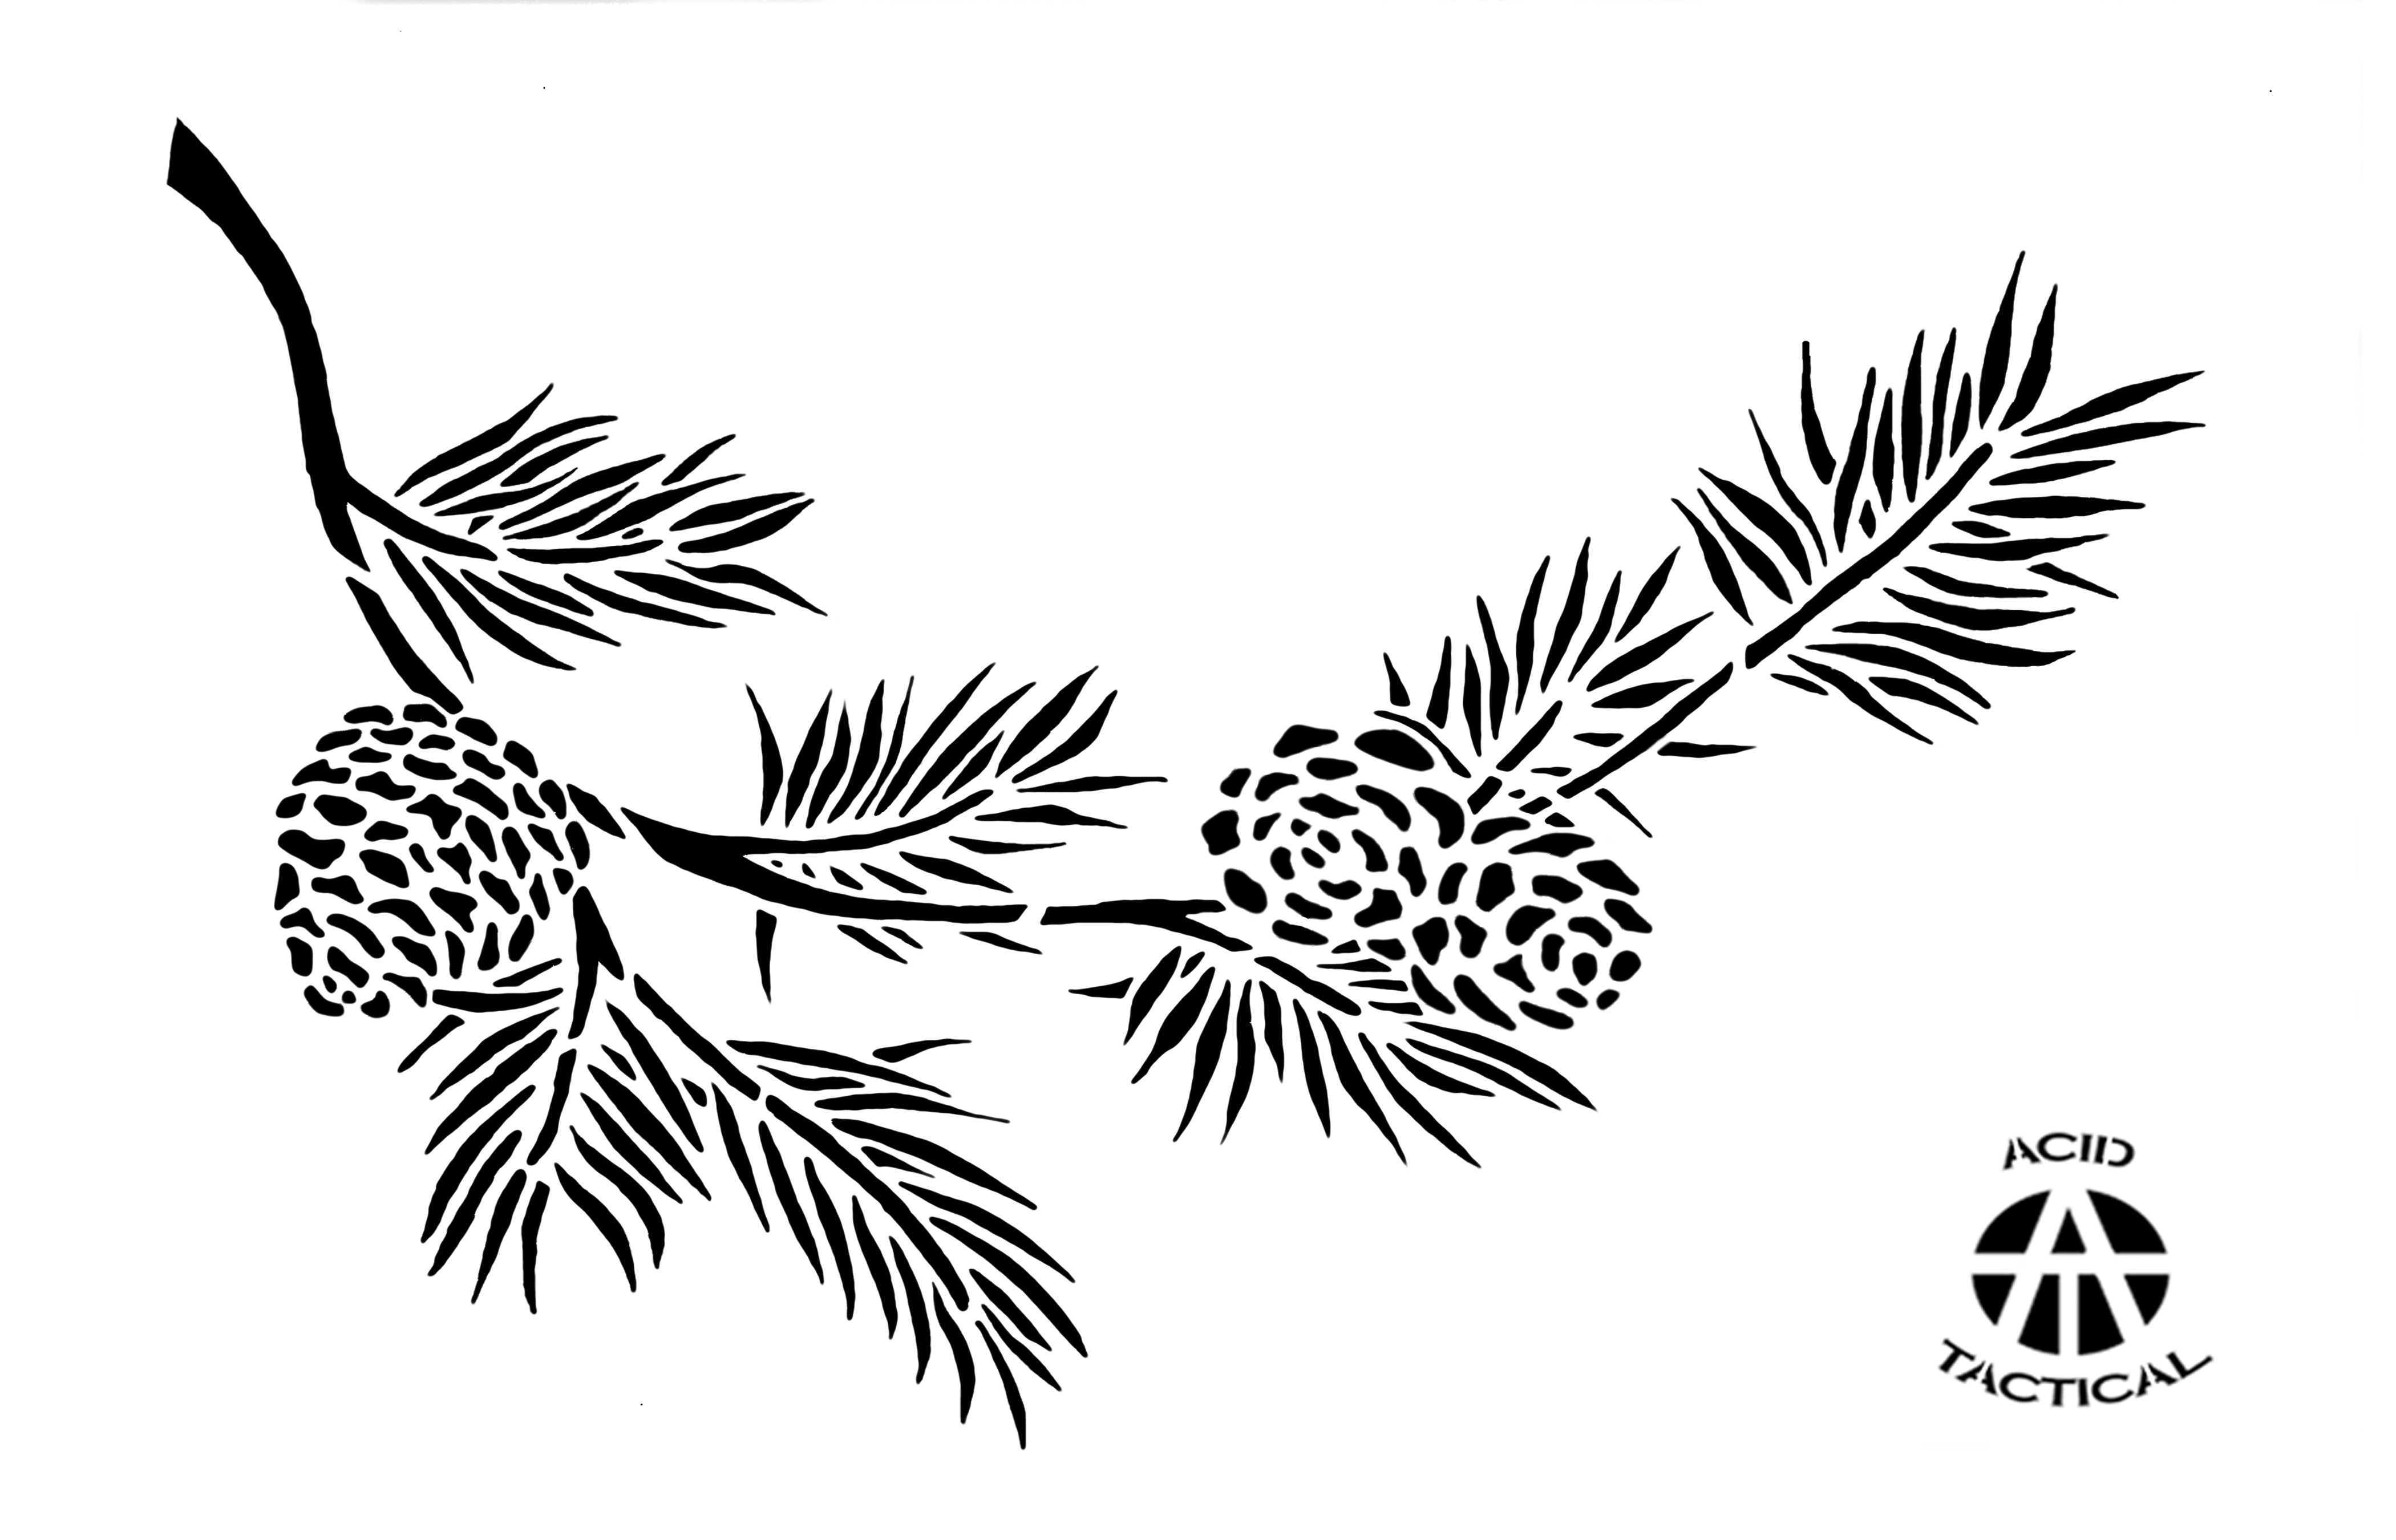 Pine Tree Template together with Coloriage Noel Sapin likewise Free Christmas Tree Template as well Sapin Noel Et Cadeaux Coloriage likewise Stock Illustration Hand Drawn Vector Illustrations Seamless Pattern Pine Cones Leaves Forest Background Image60064917. on pine cone christmas